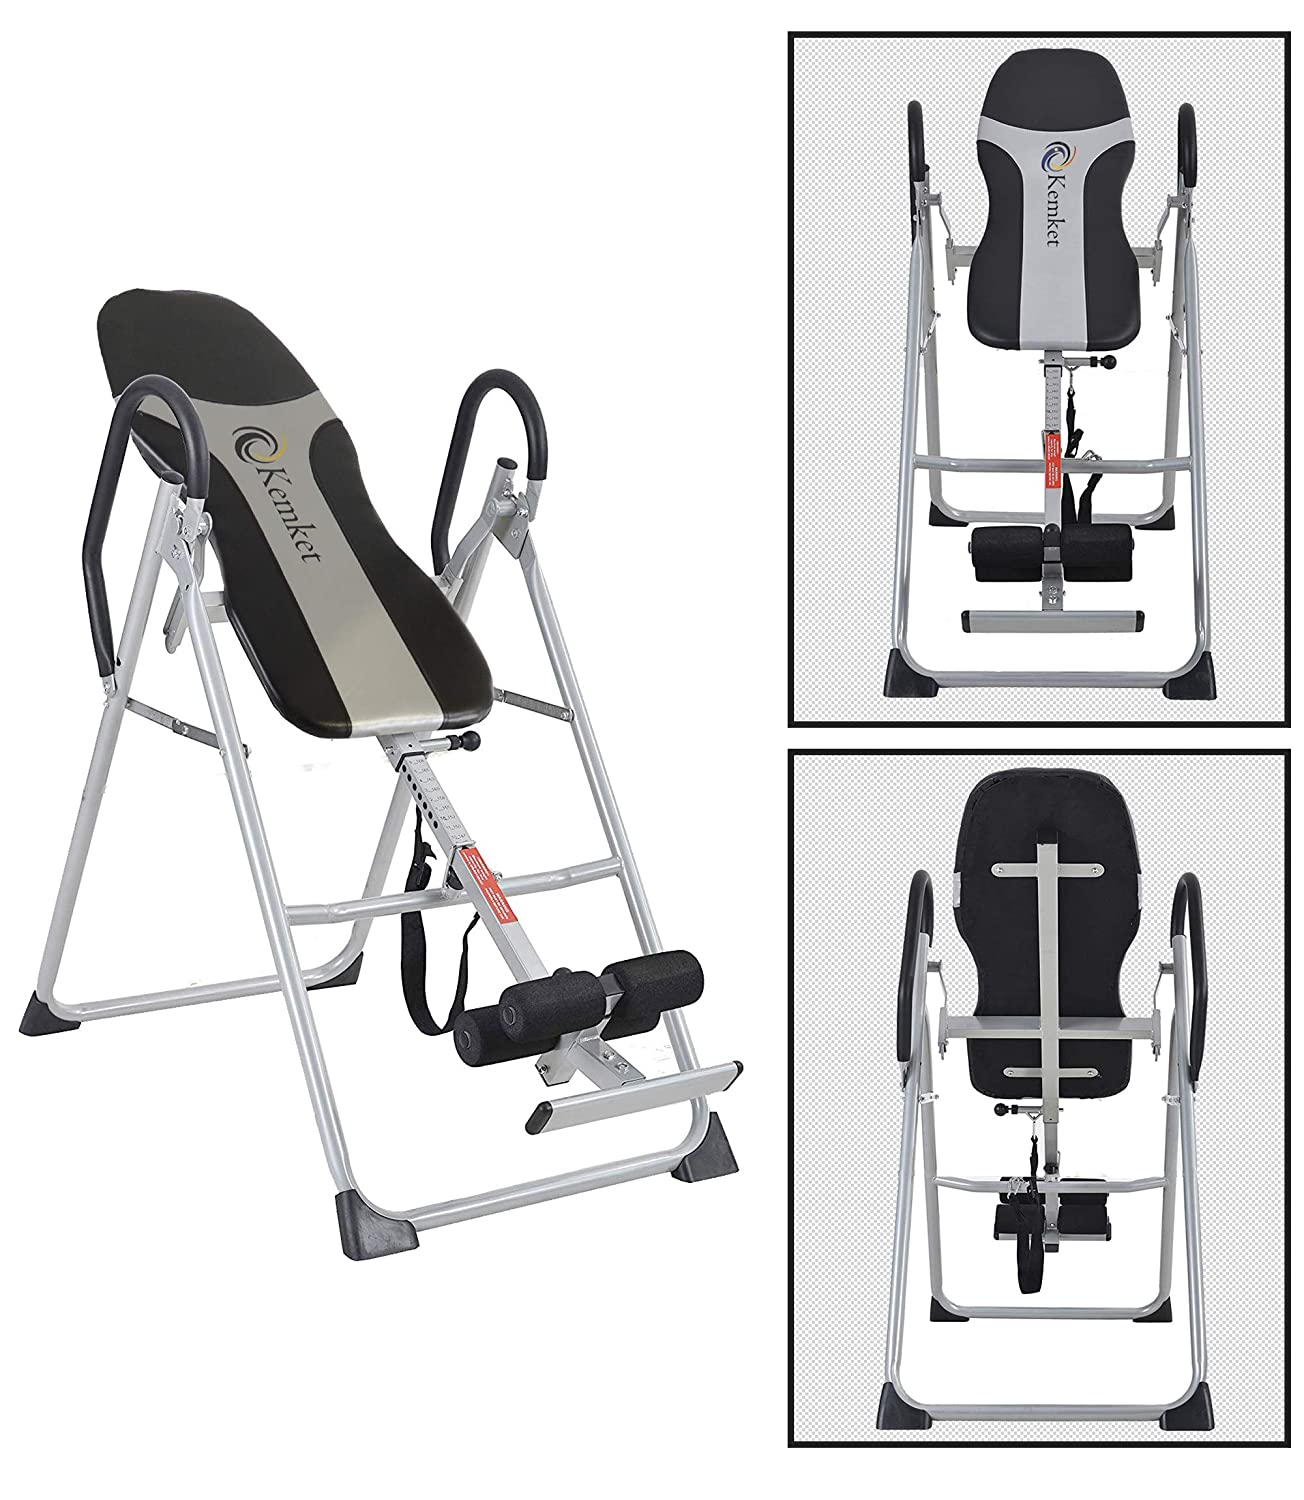 Kemket Inversion Table Back Therapy Fitness Reflexology Equipment AST-02Q Inversion Table Inversion Machine With Comfort Backrest